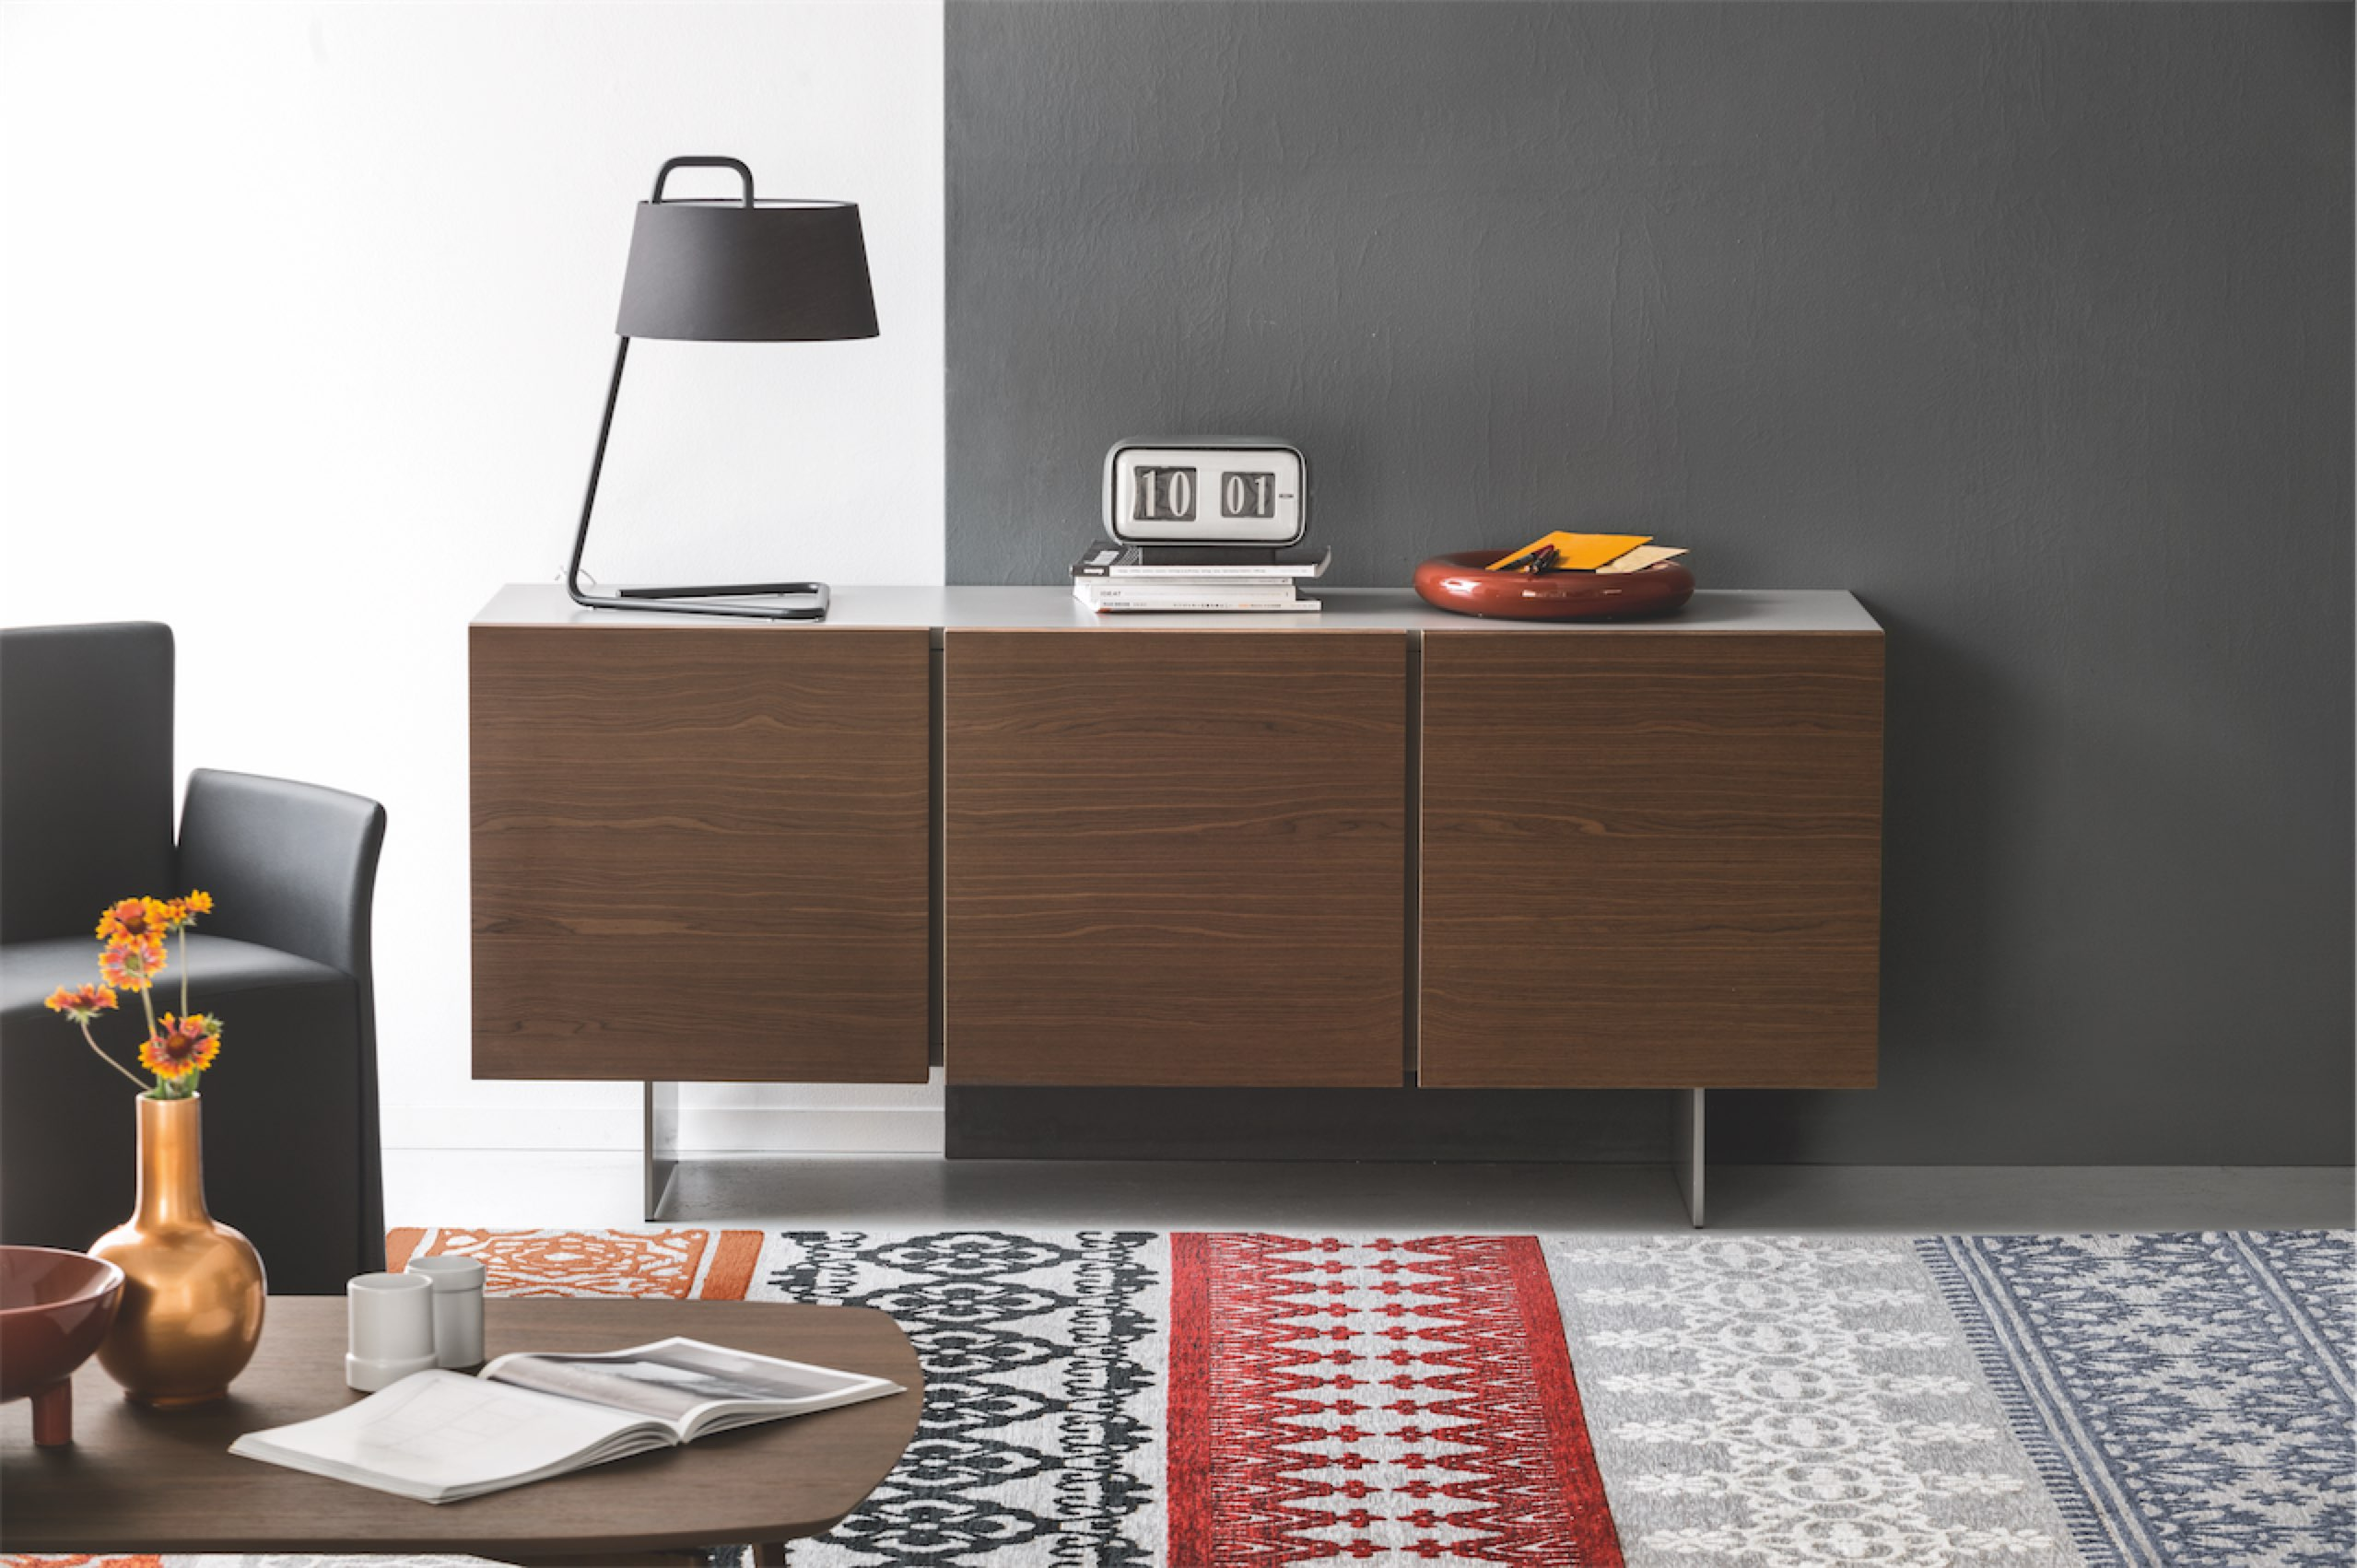 Living space furniture store Clearance Visit Our Showroom For More Ideas On How To Integrate Your Record Collection With Your Living Space Ikea What Your Record Collection Can Do For Your Living Space Hip